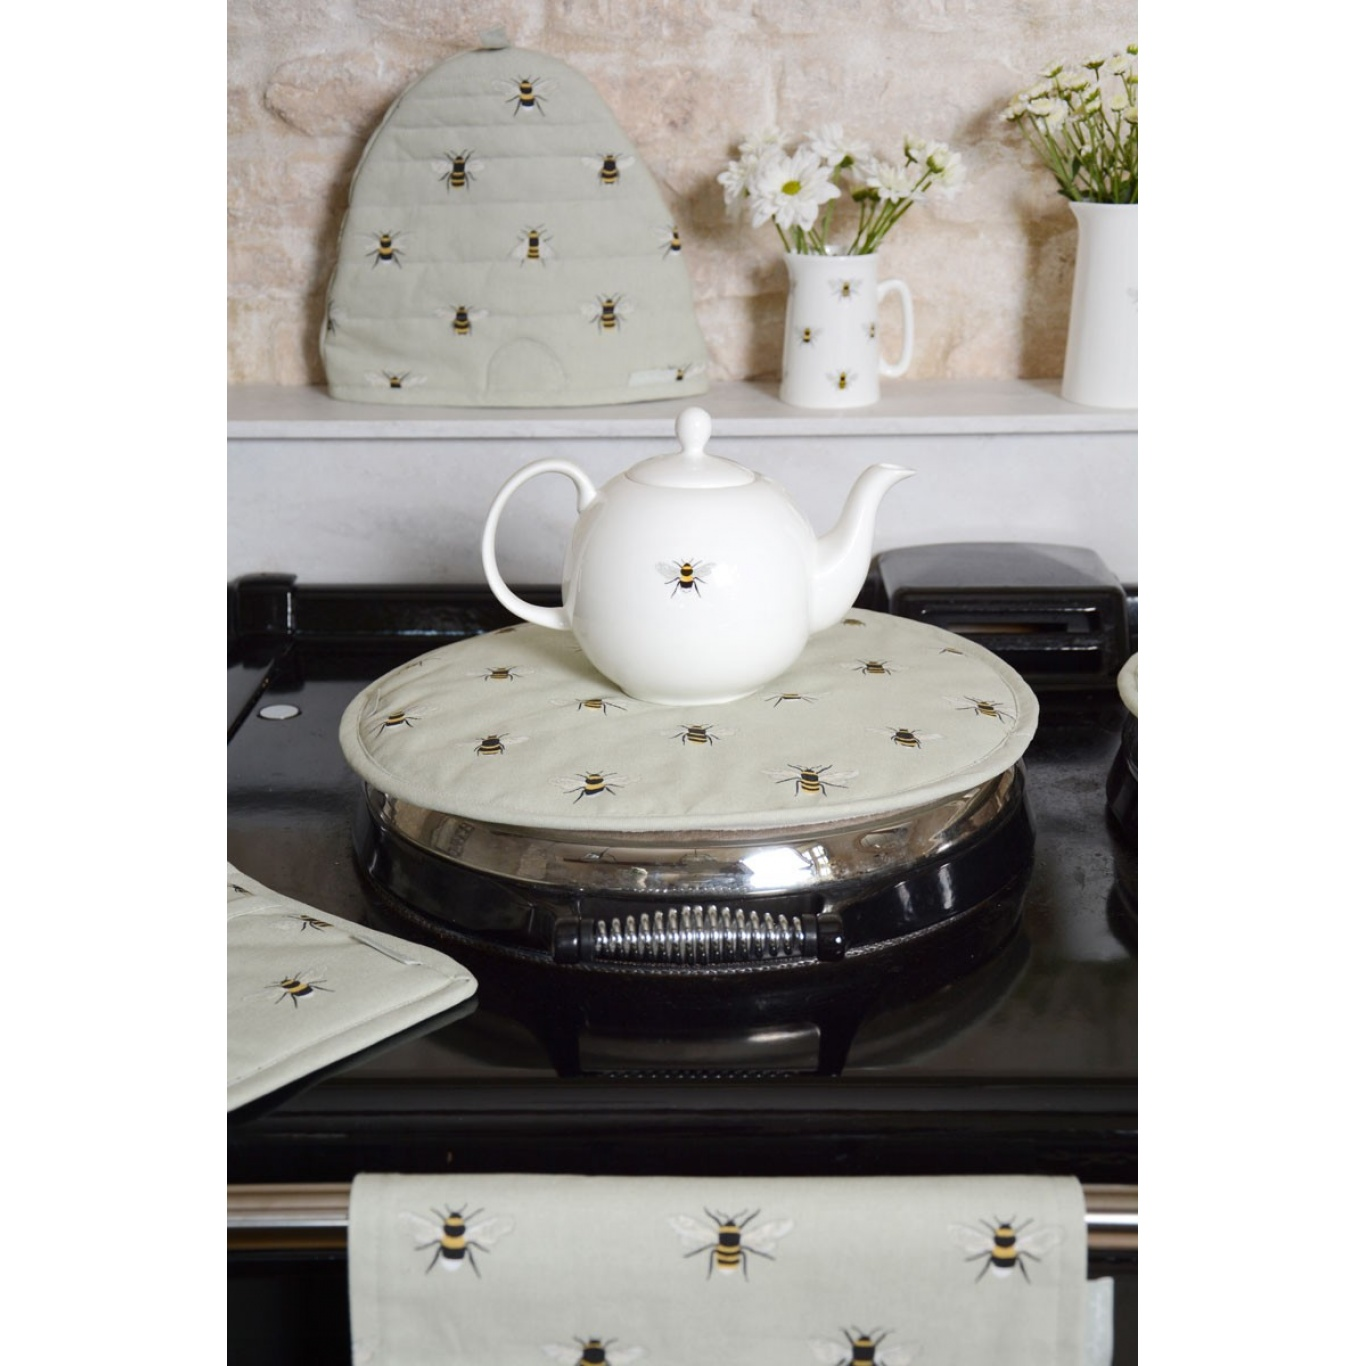 Sophie Allport Bees Round Hob Cover